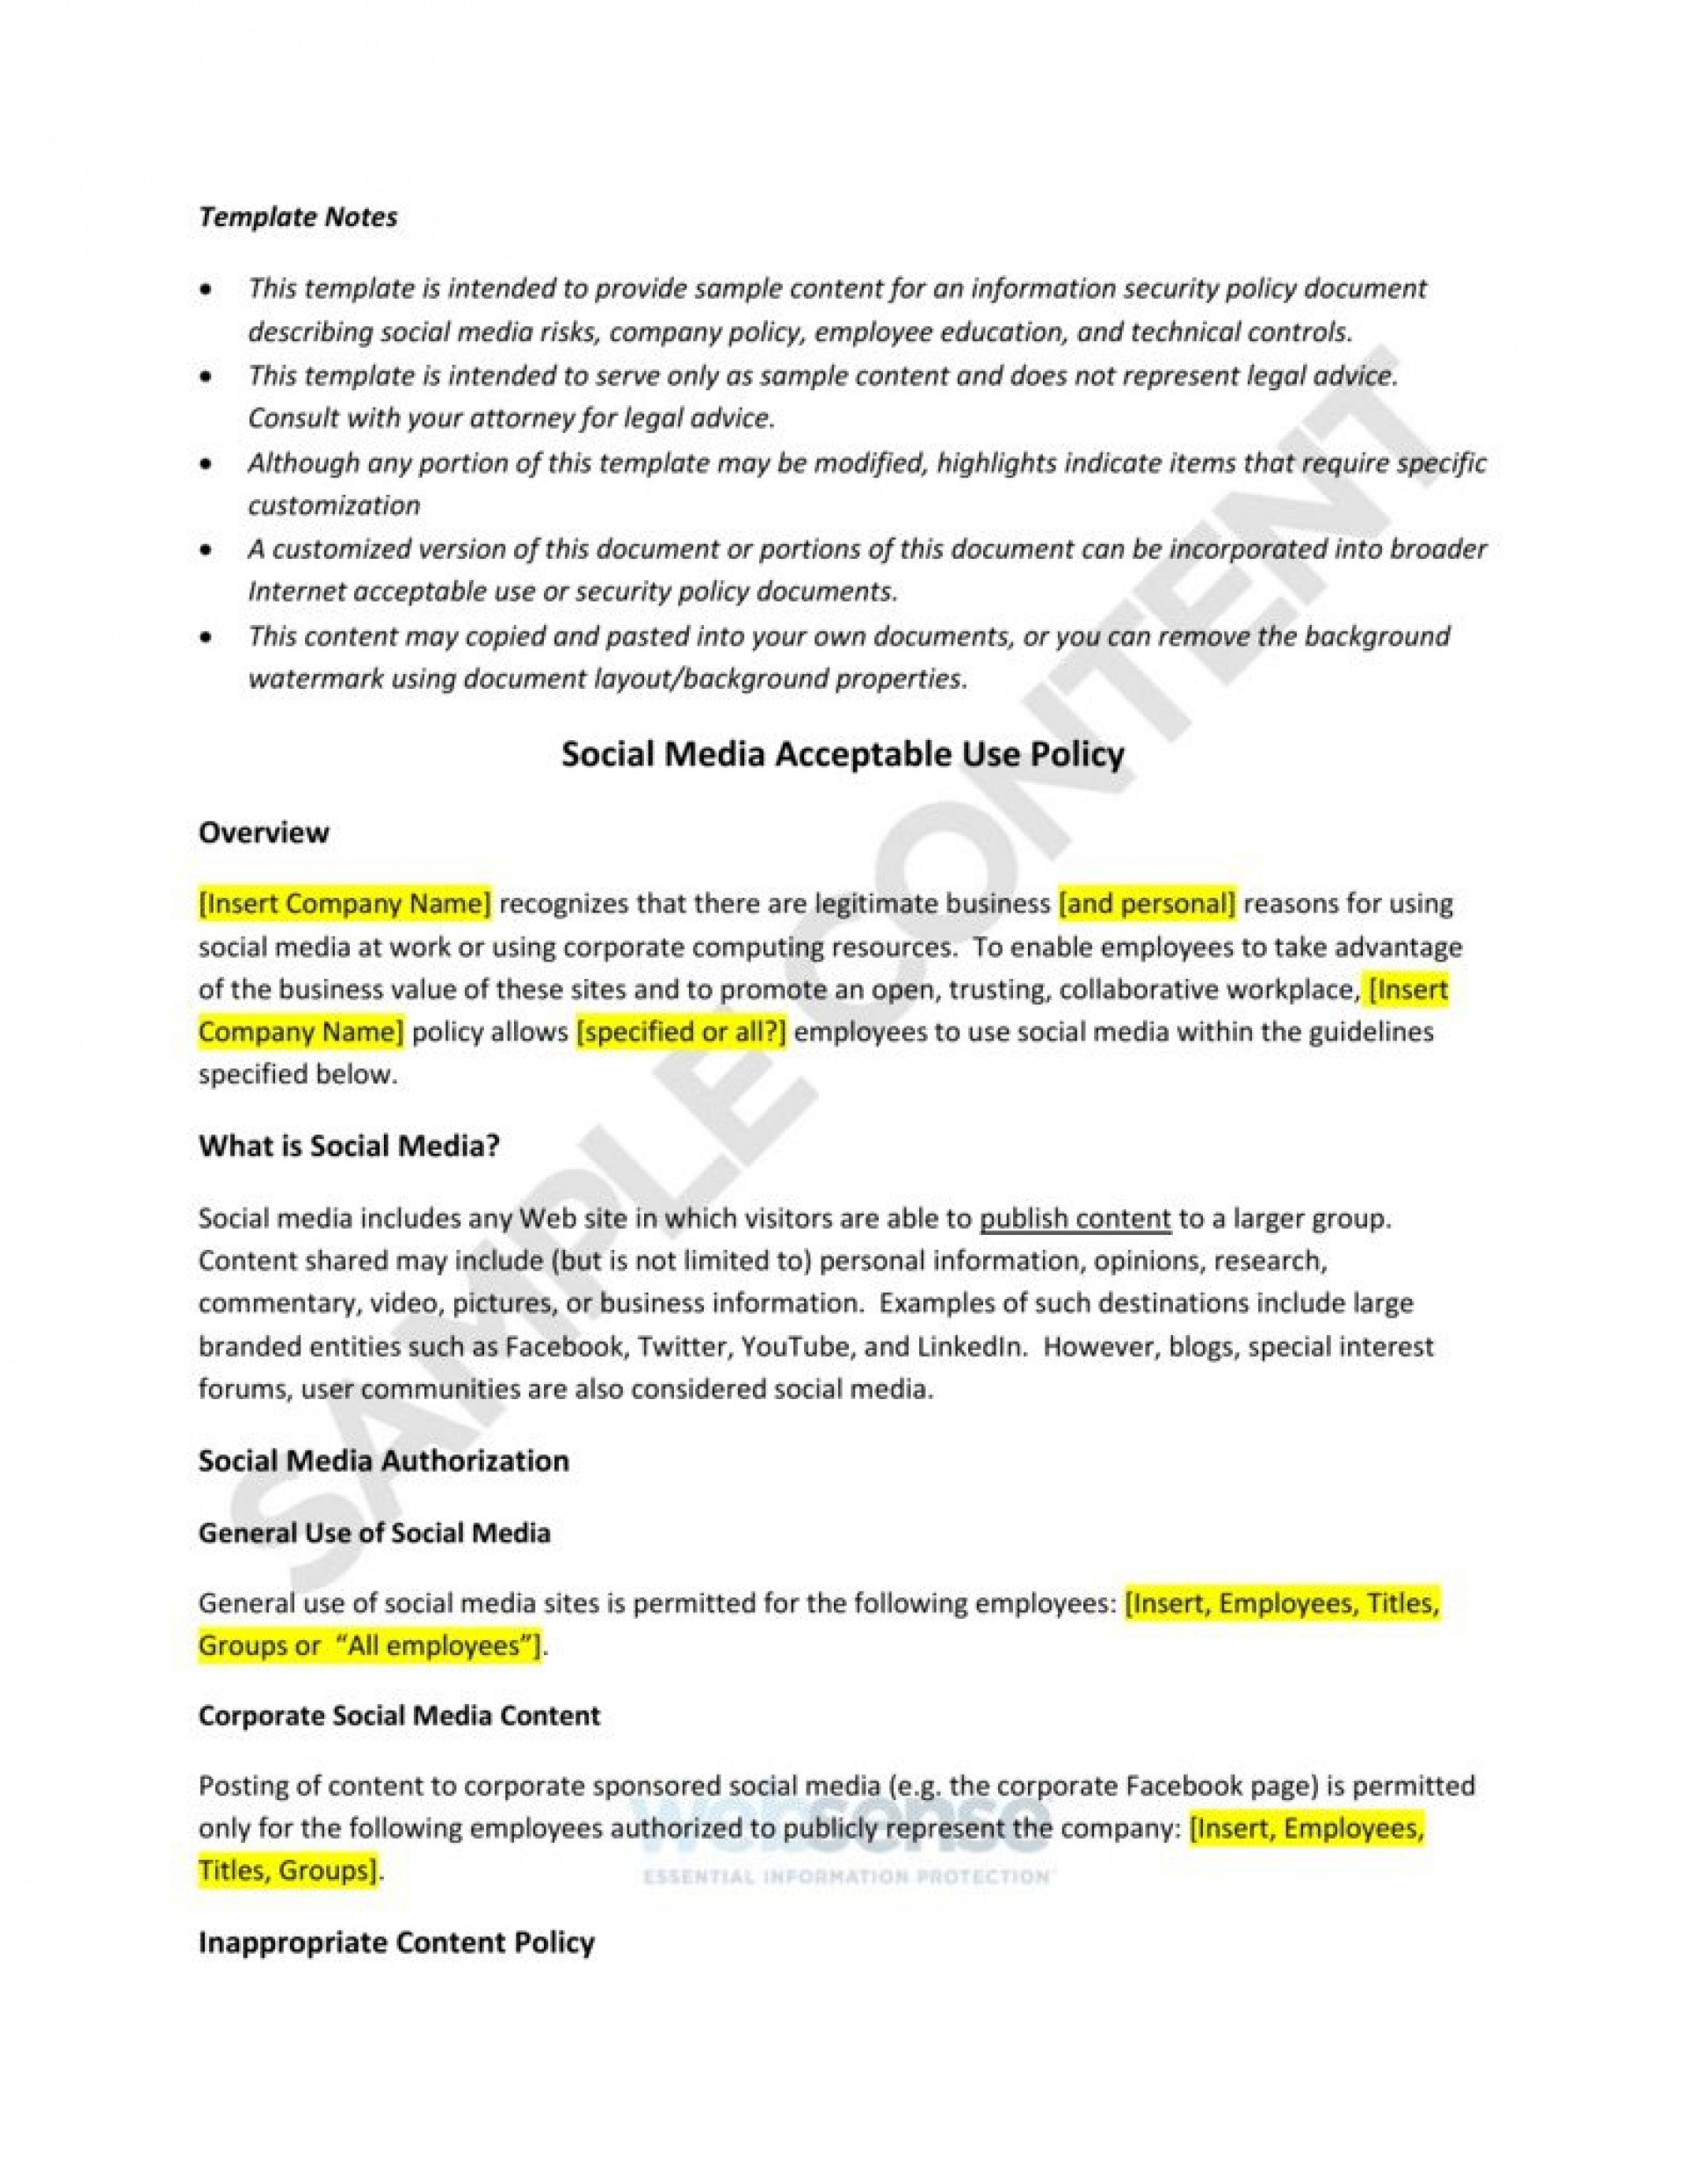 003 Amazing Social Media Policie Template High Definition  Simple Policy Australia Example For Small Busines1920